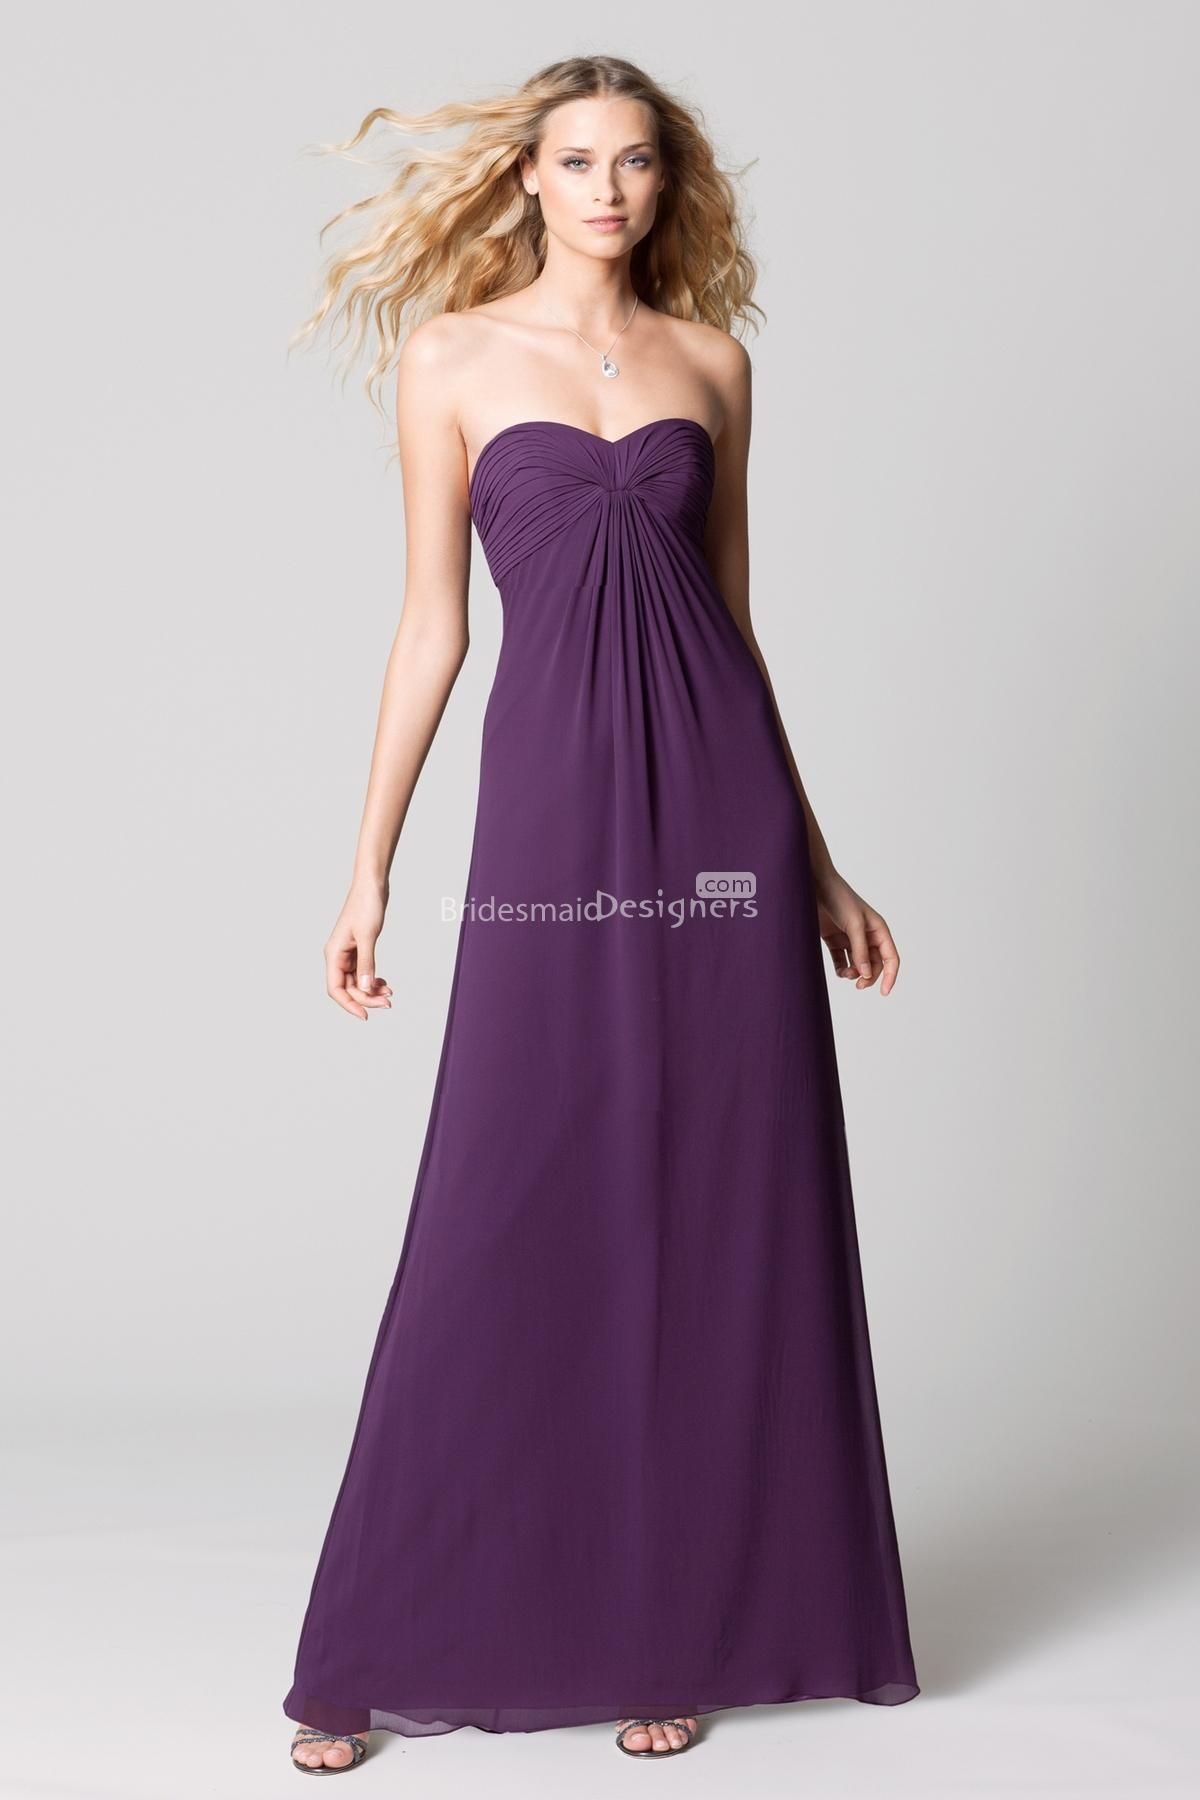 17 Best images about Purple Bridesmaid Dresses on Pinterest ...